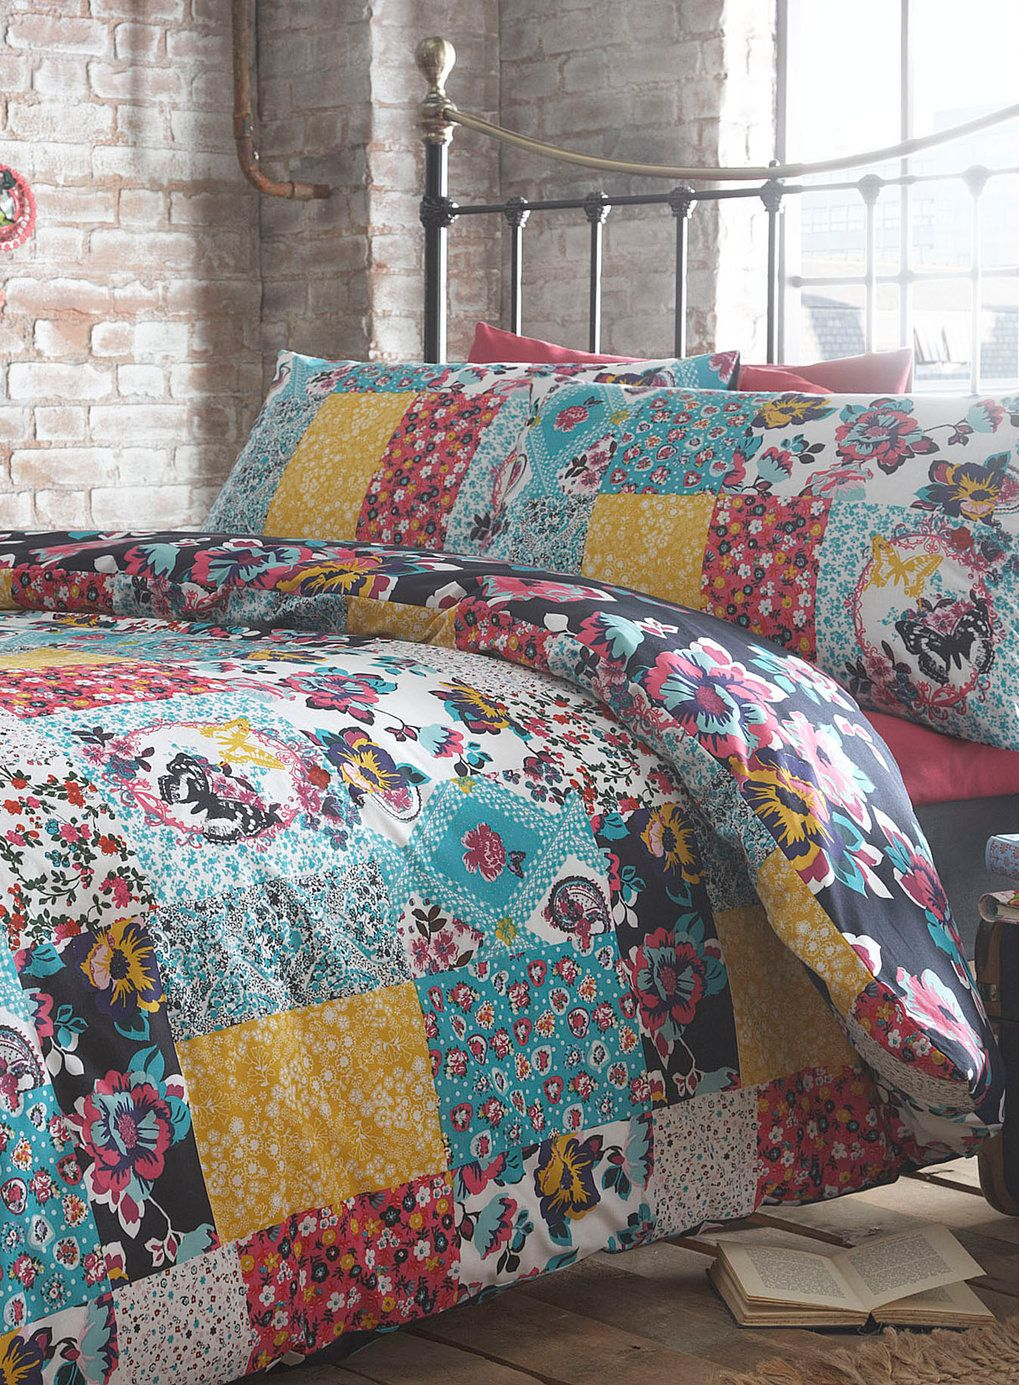 Olivia Patch Printed Bedding Set, £35 | Room | Pinterest | Bed ... : bhs quilted bedspreads - Adamdwight.com